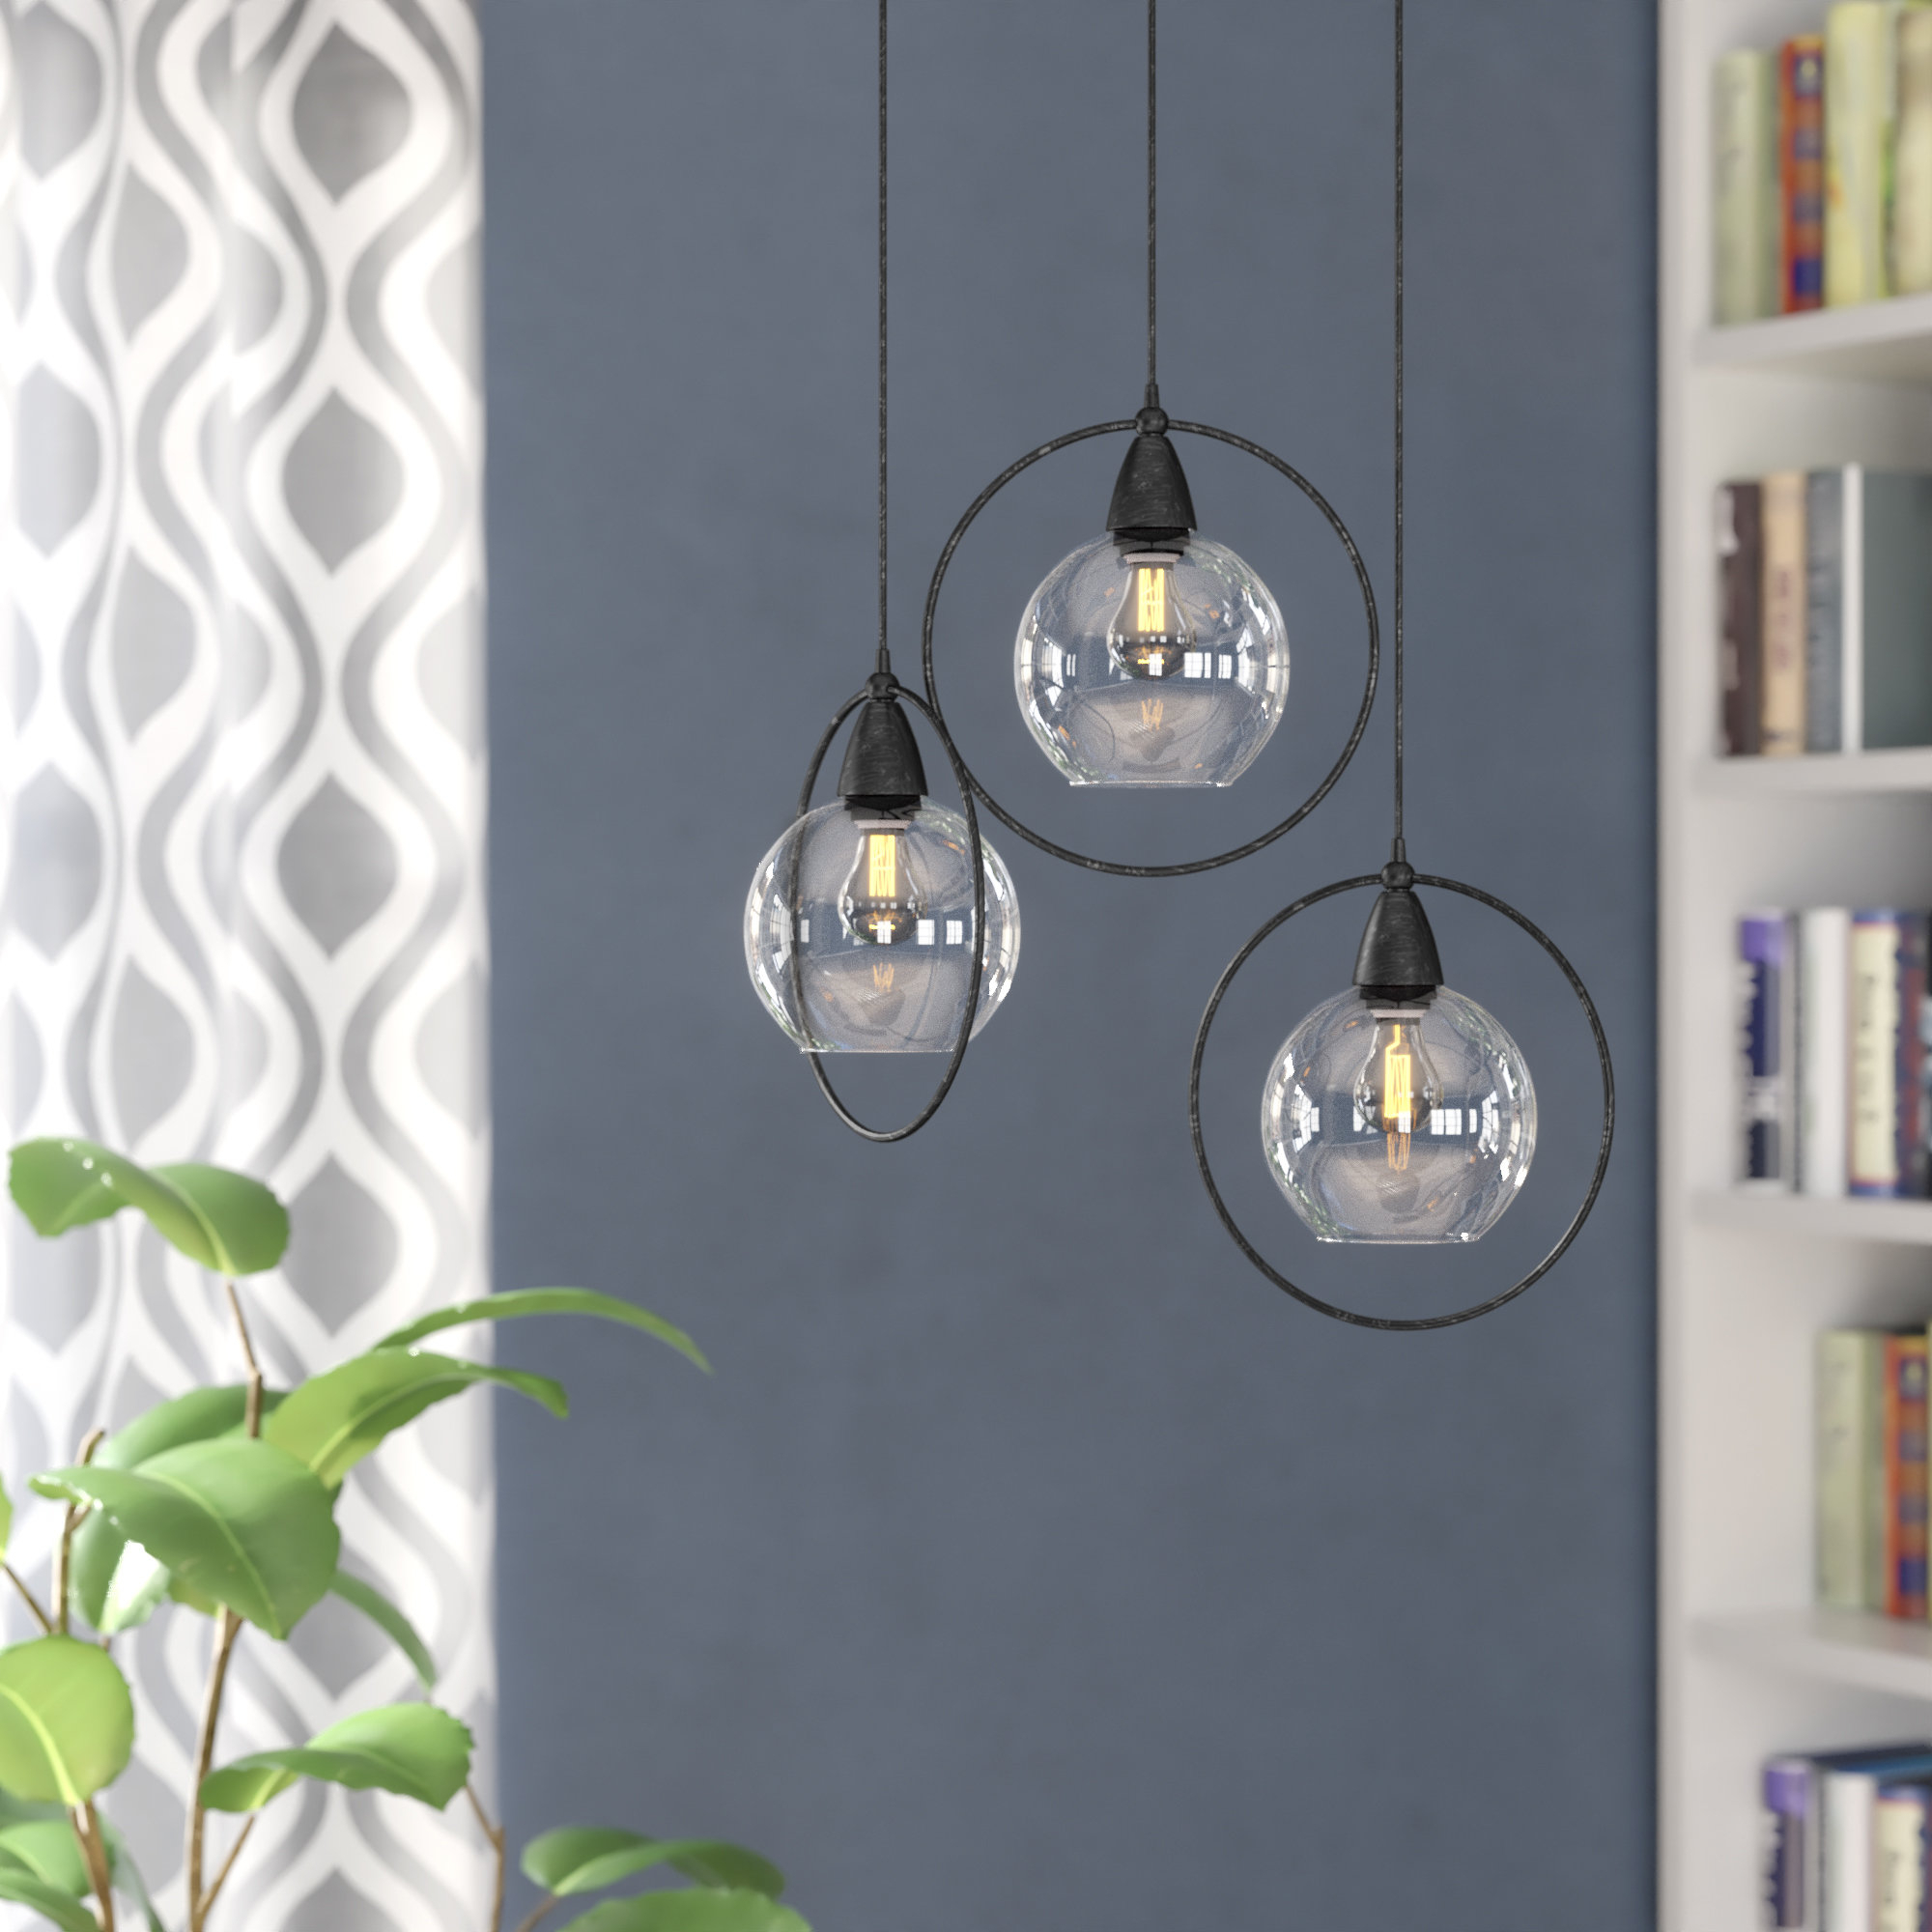 3 Light Cluster Pendant Lighting You'll Love In 2019 | Wayfair With Regard To Gattilier 3 Light Cluster Pendants (View 5 of 30)